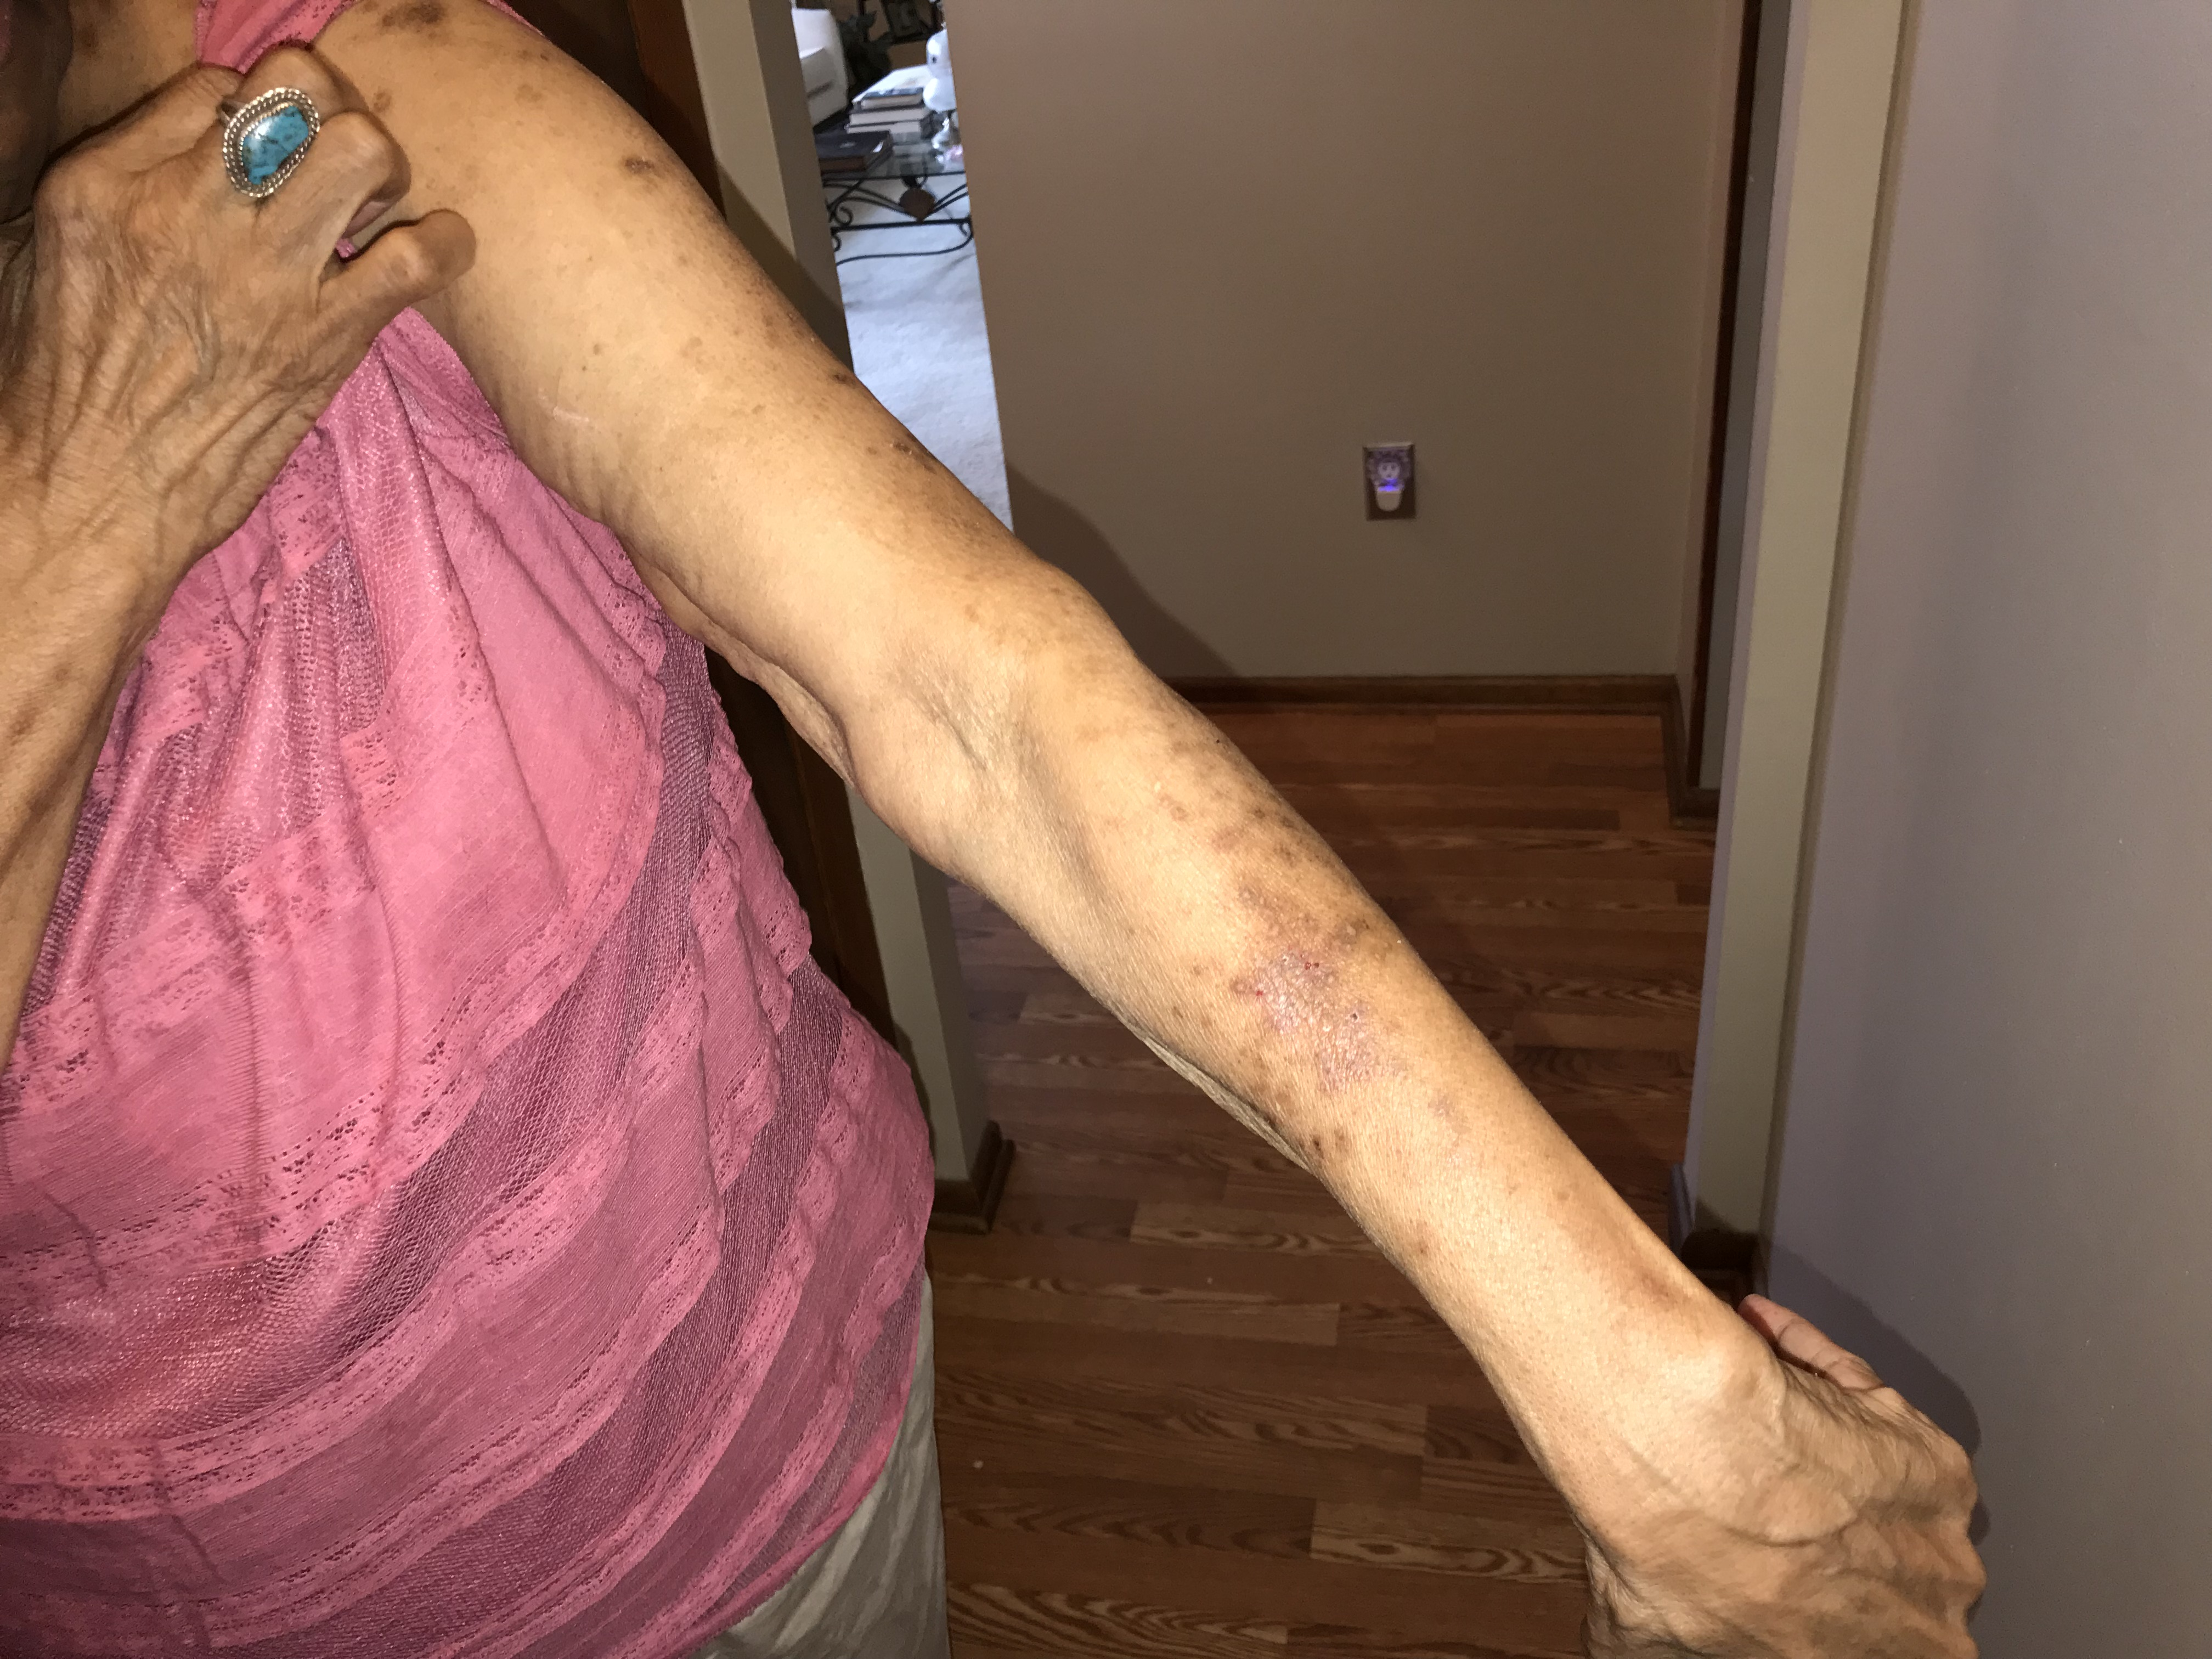 Retirement Home Bed Bug Injury MD